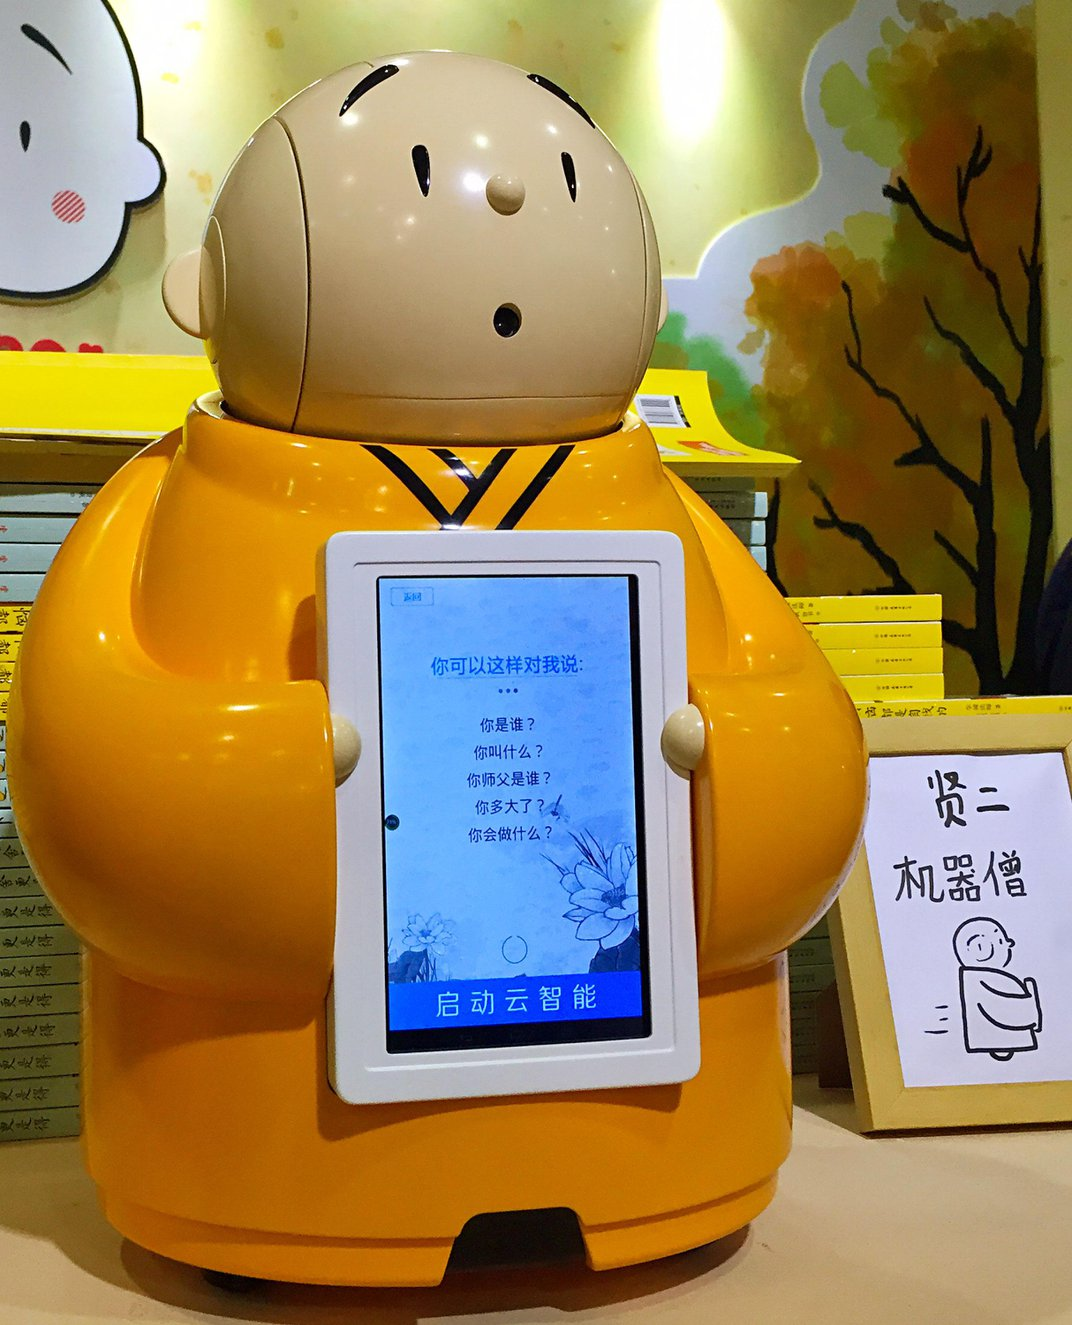 A Robot Monk Is Spreading Buddhist Teachings in China